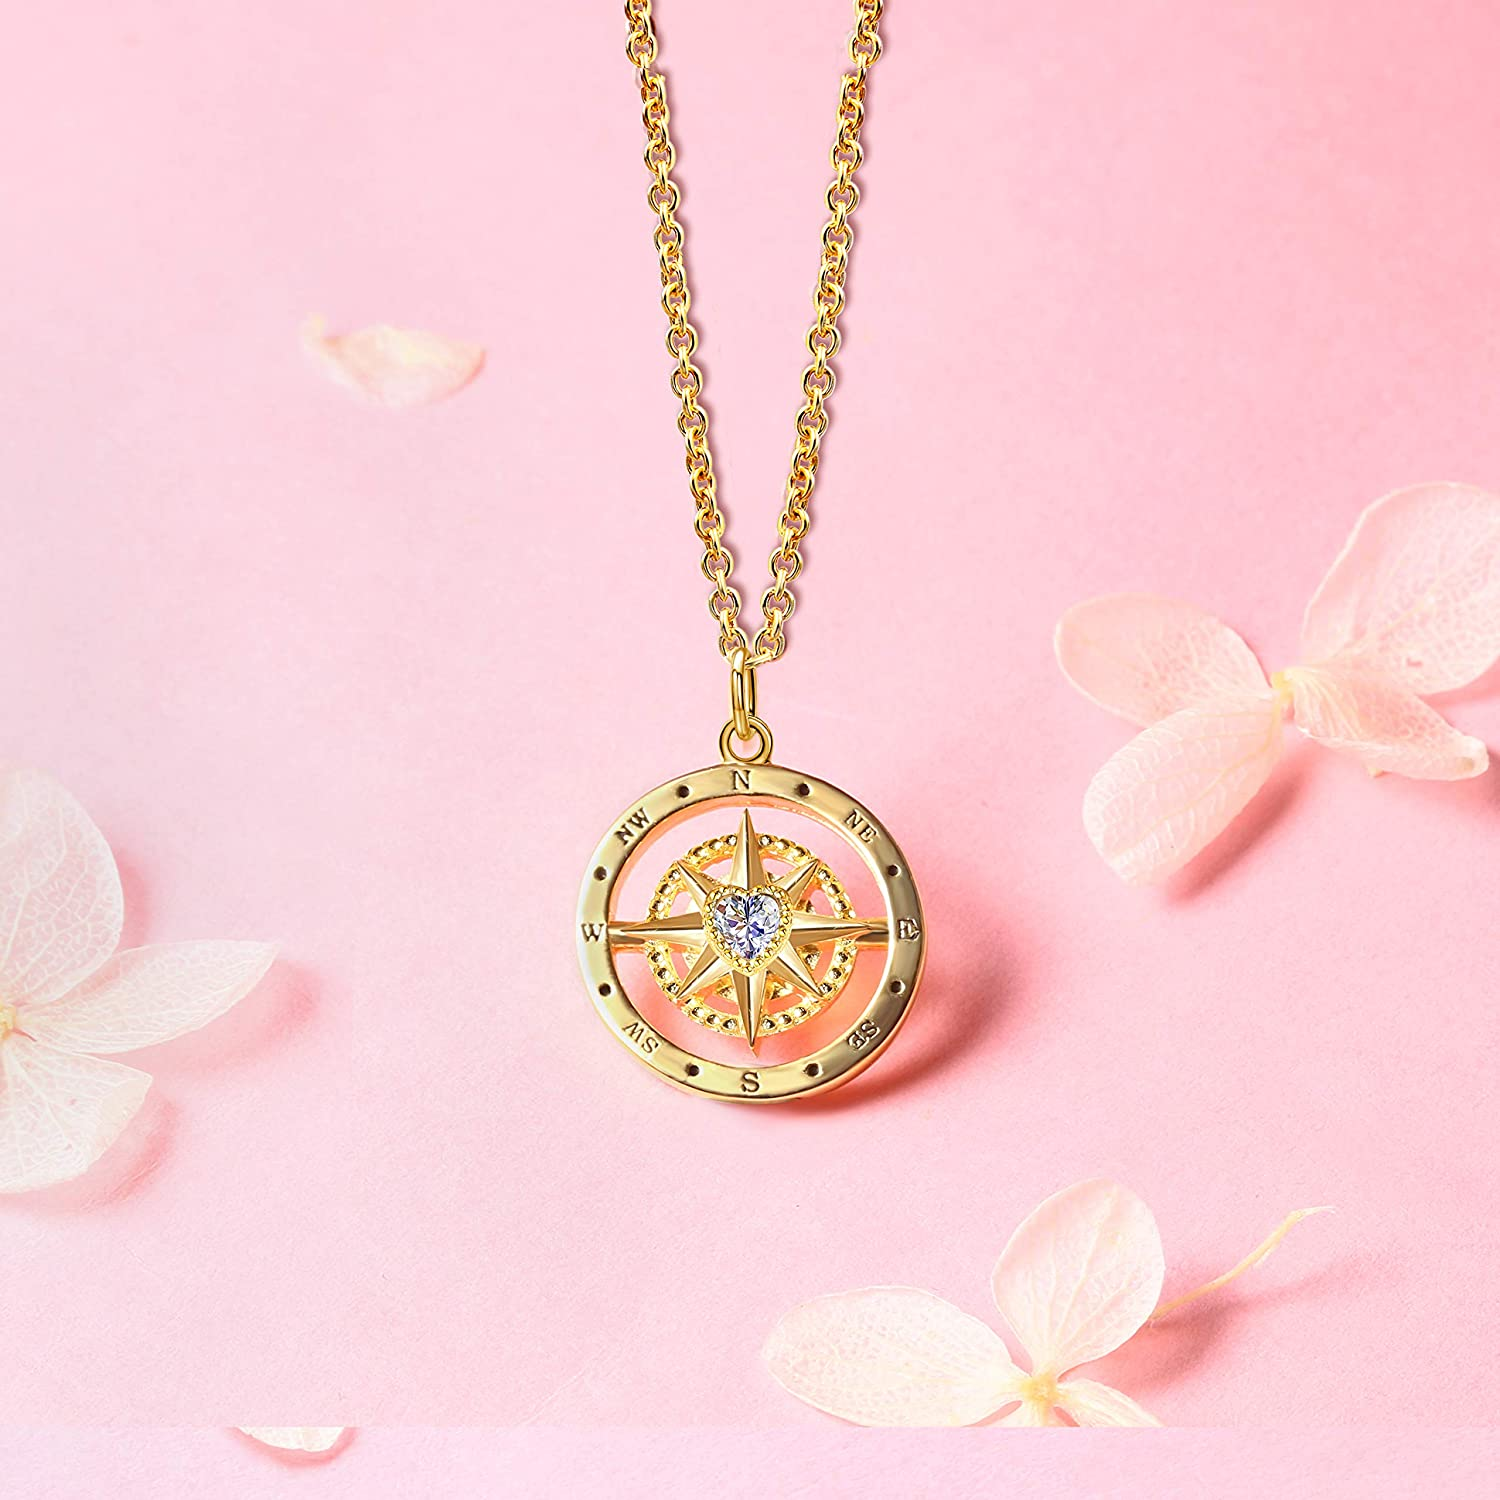 Christmas Birthday Anniversary Mothers Day Valentines Day Graduation Gifts Best Friend Niece Daughter Sister Wife Coworker Jewelry Life Is A Journey Enjoy The Ride Rose Gold Stainless Steel Compass Pendant Necklace for Women and Teen Girls